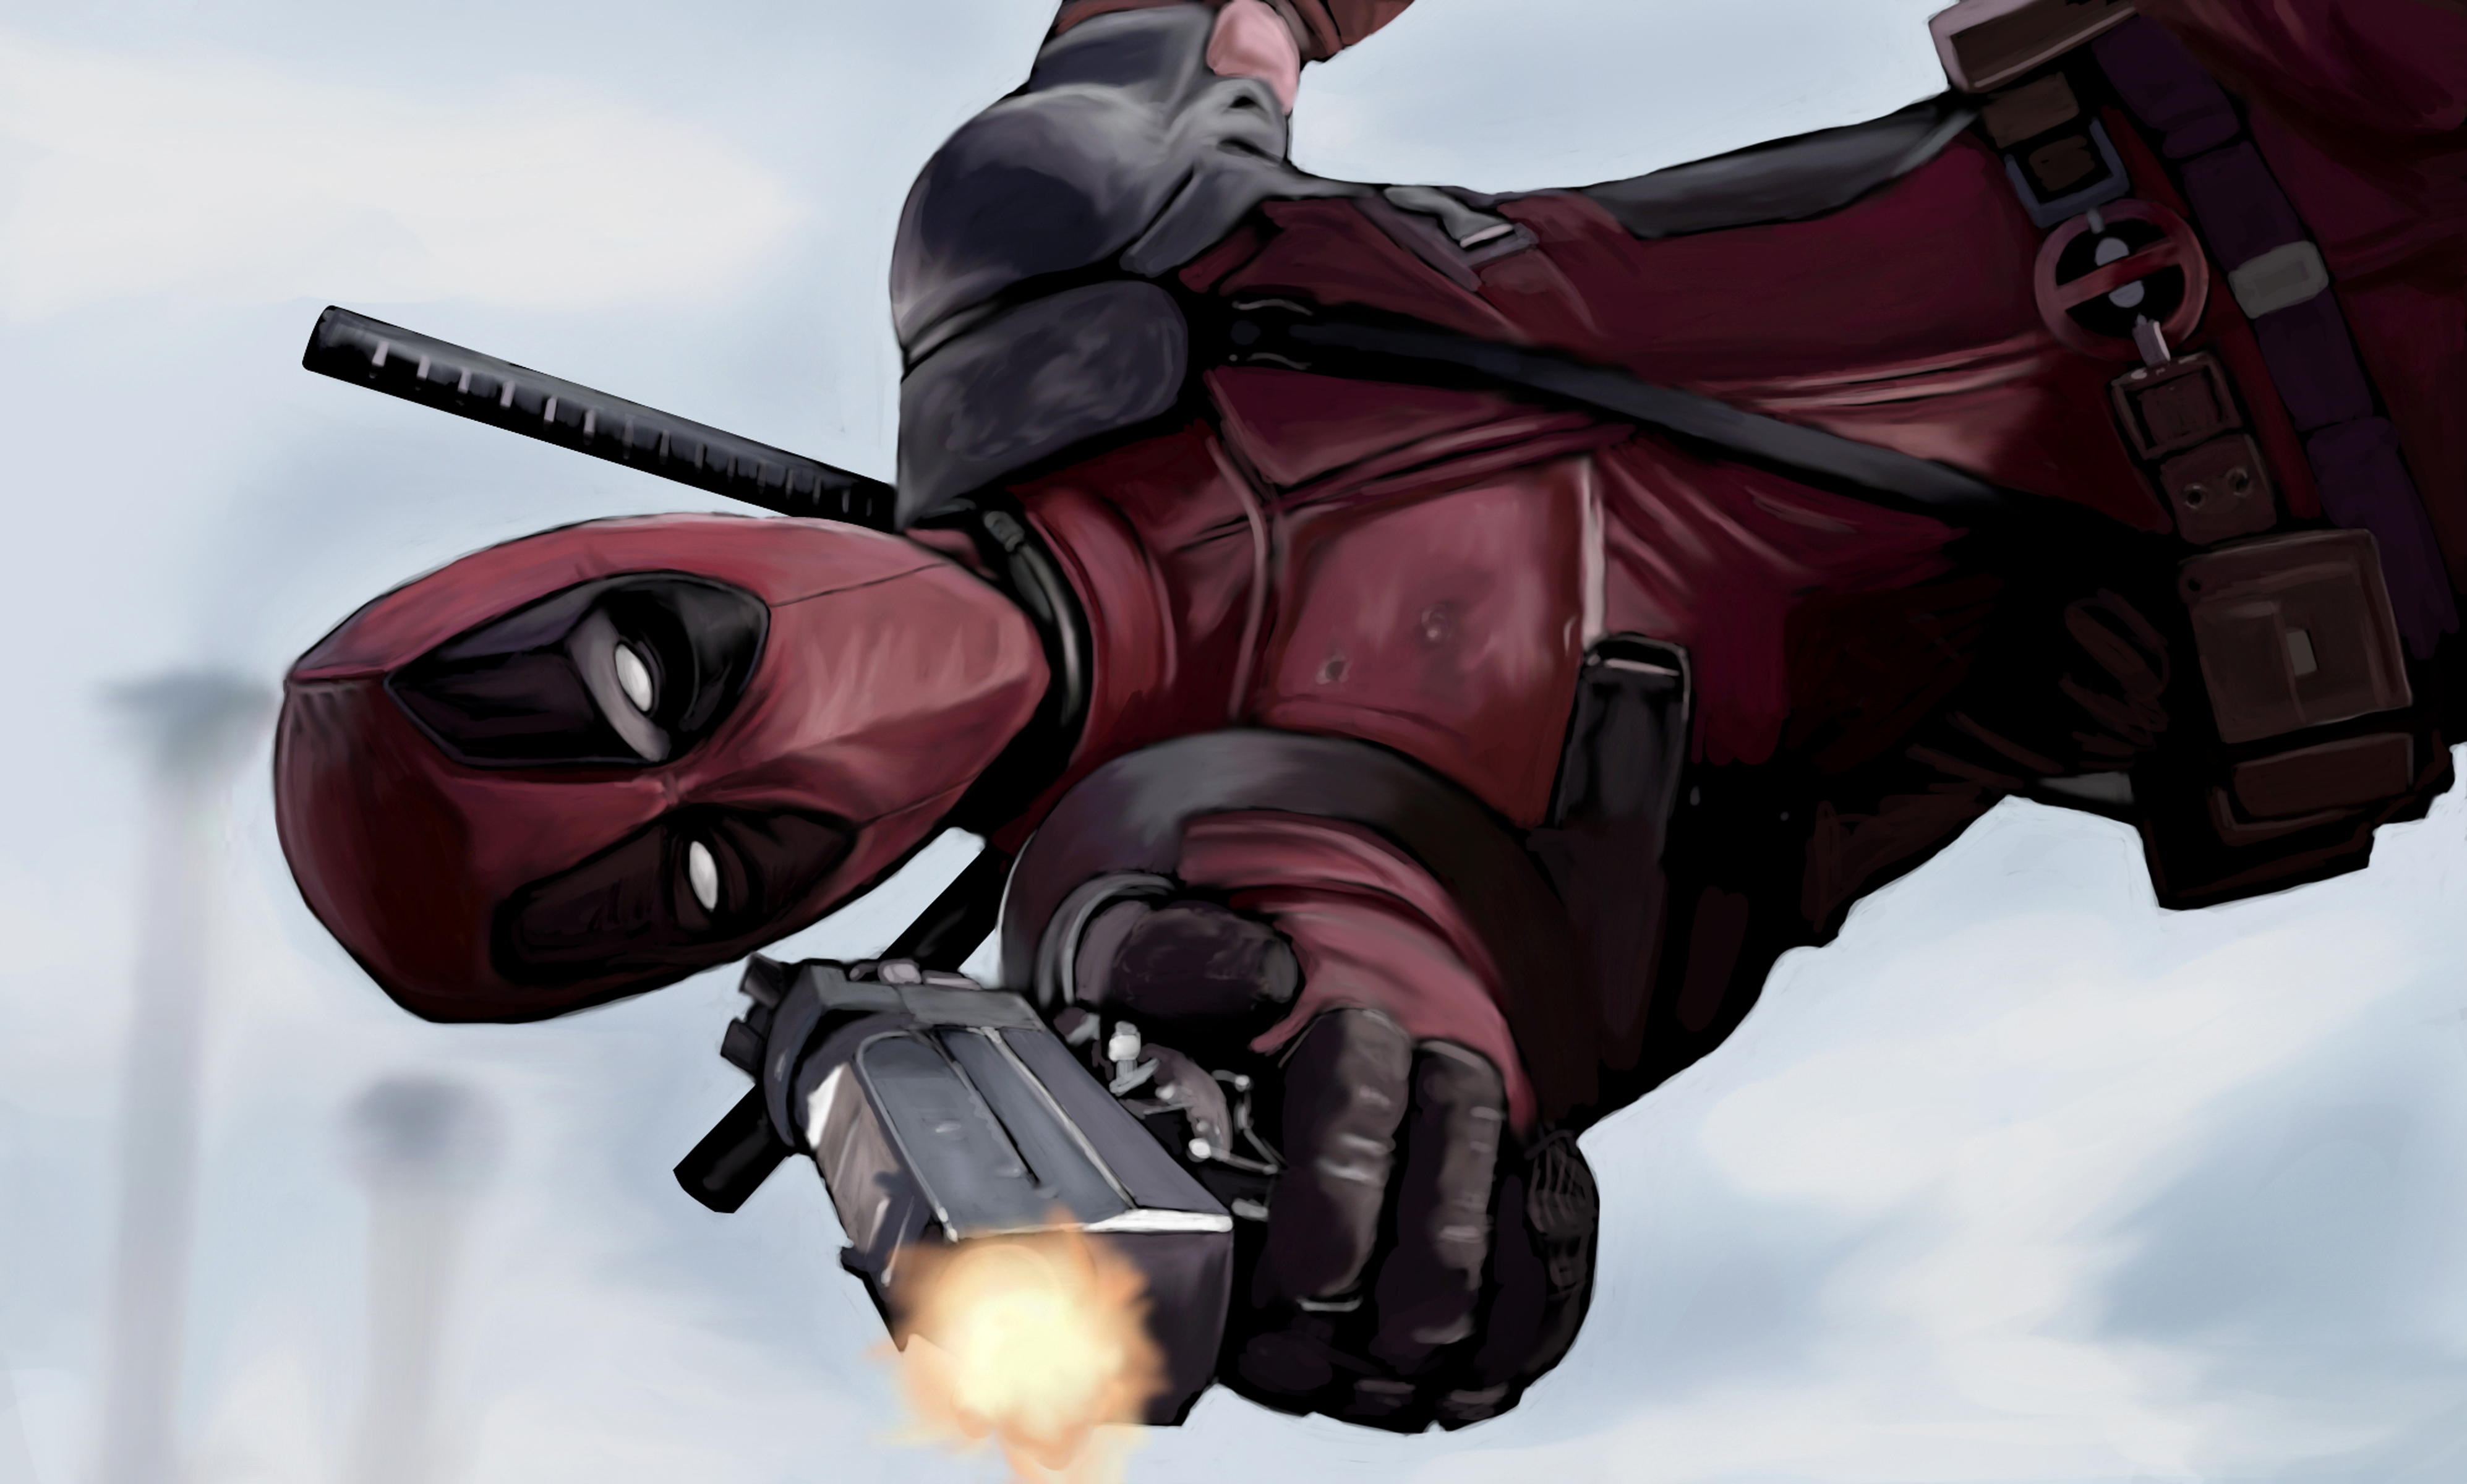 Deadpool Artwork 4k Hd Superheroes 4k Wallpapers Images